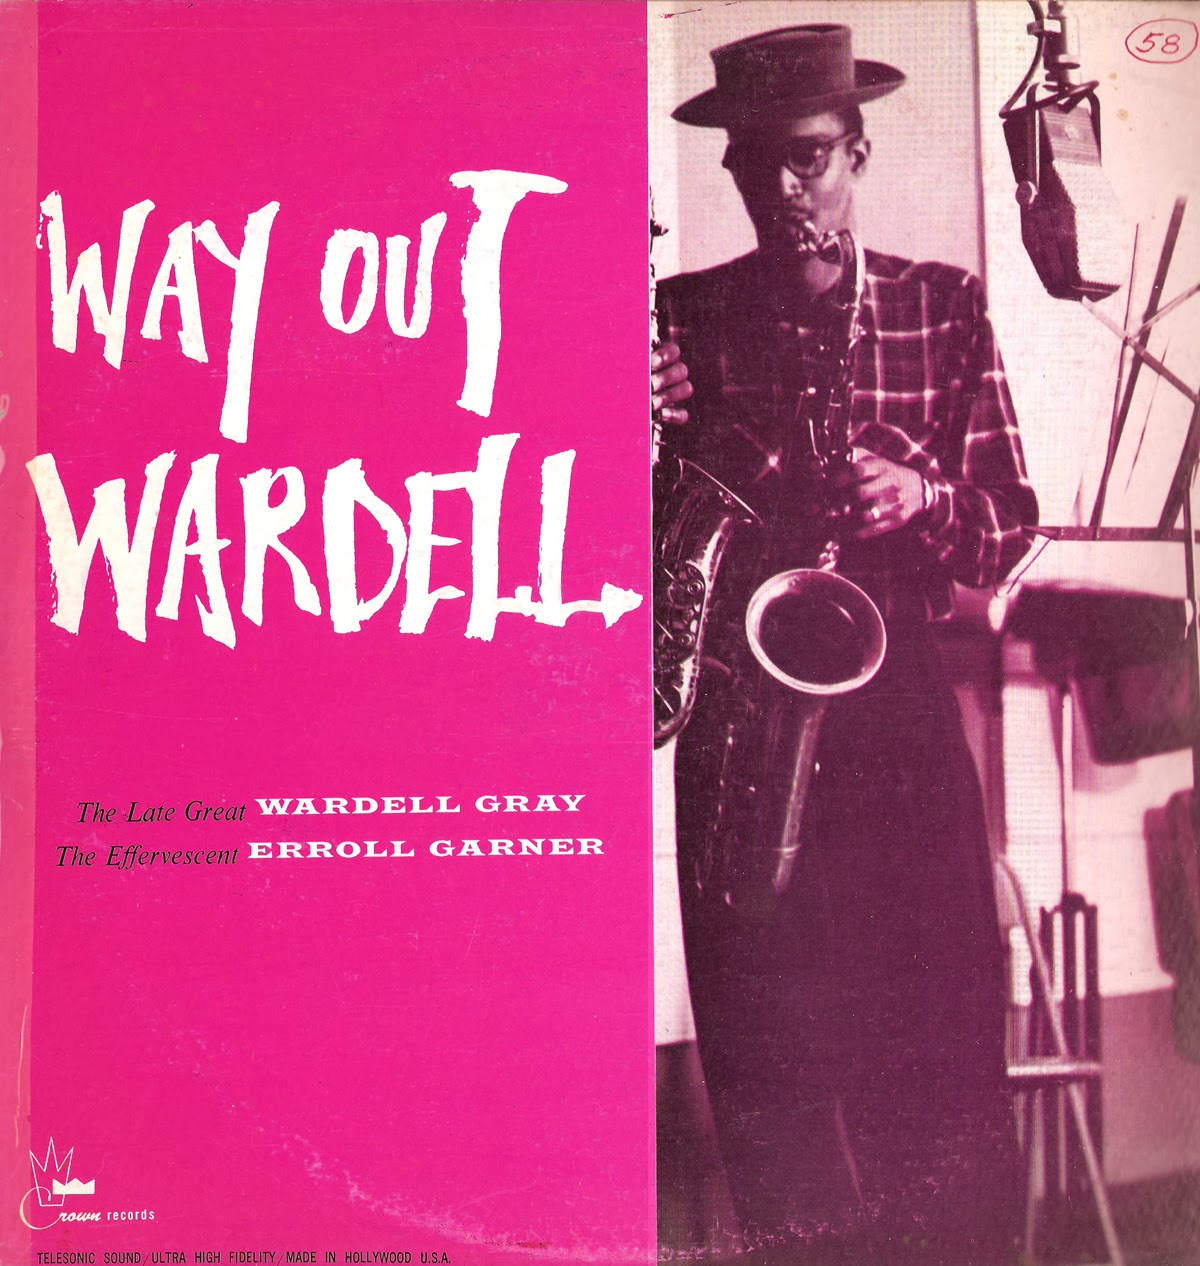 Way-Out-Wardell.jpg